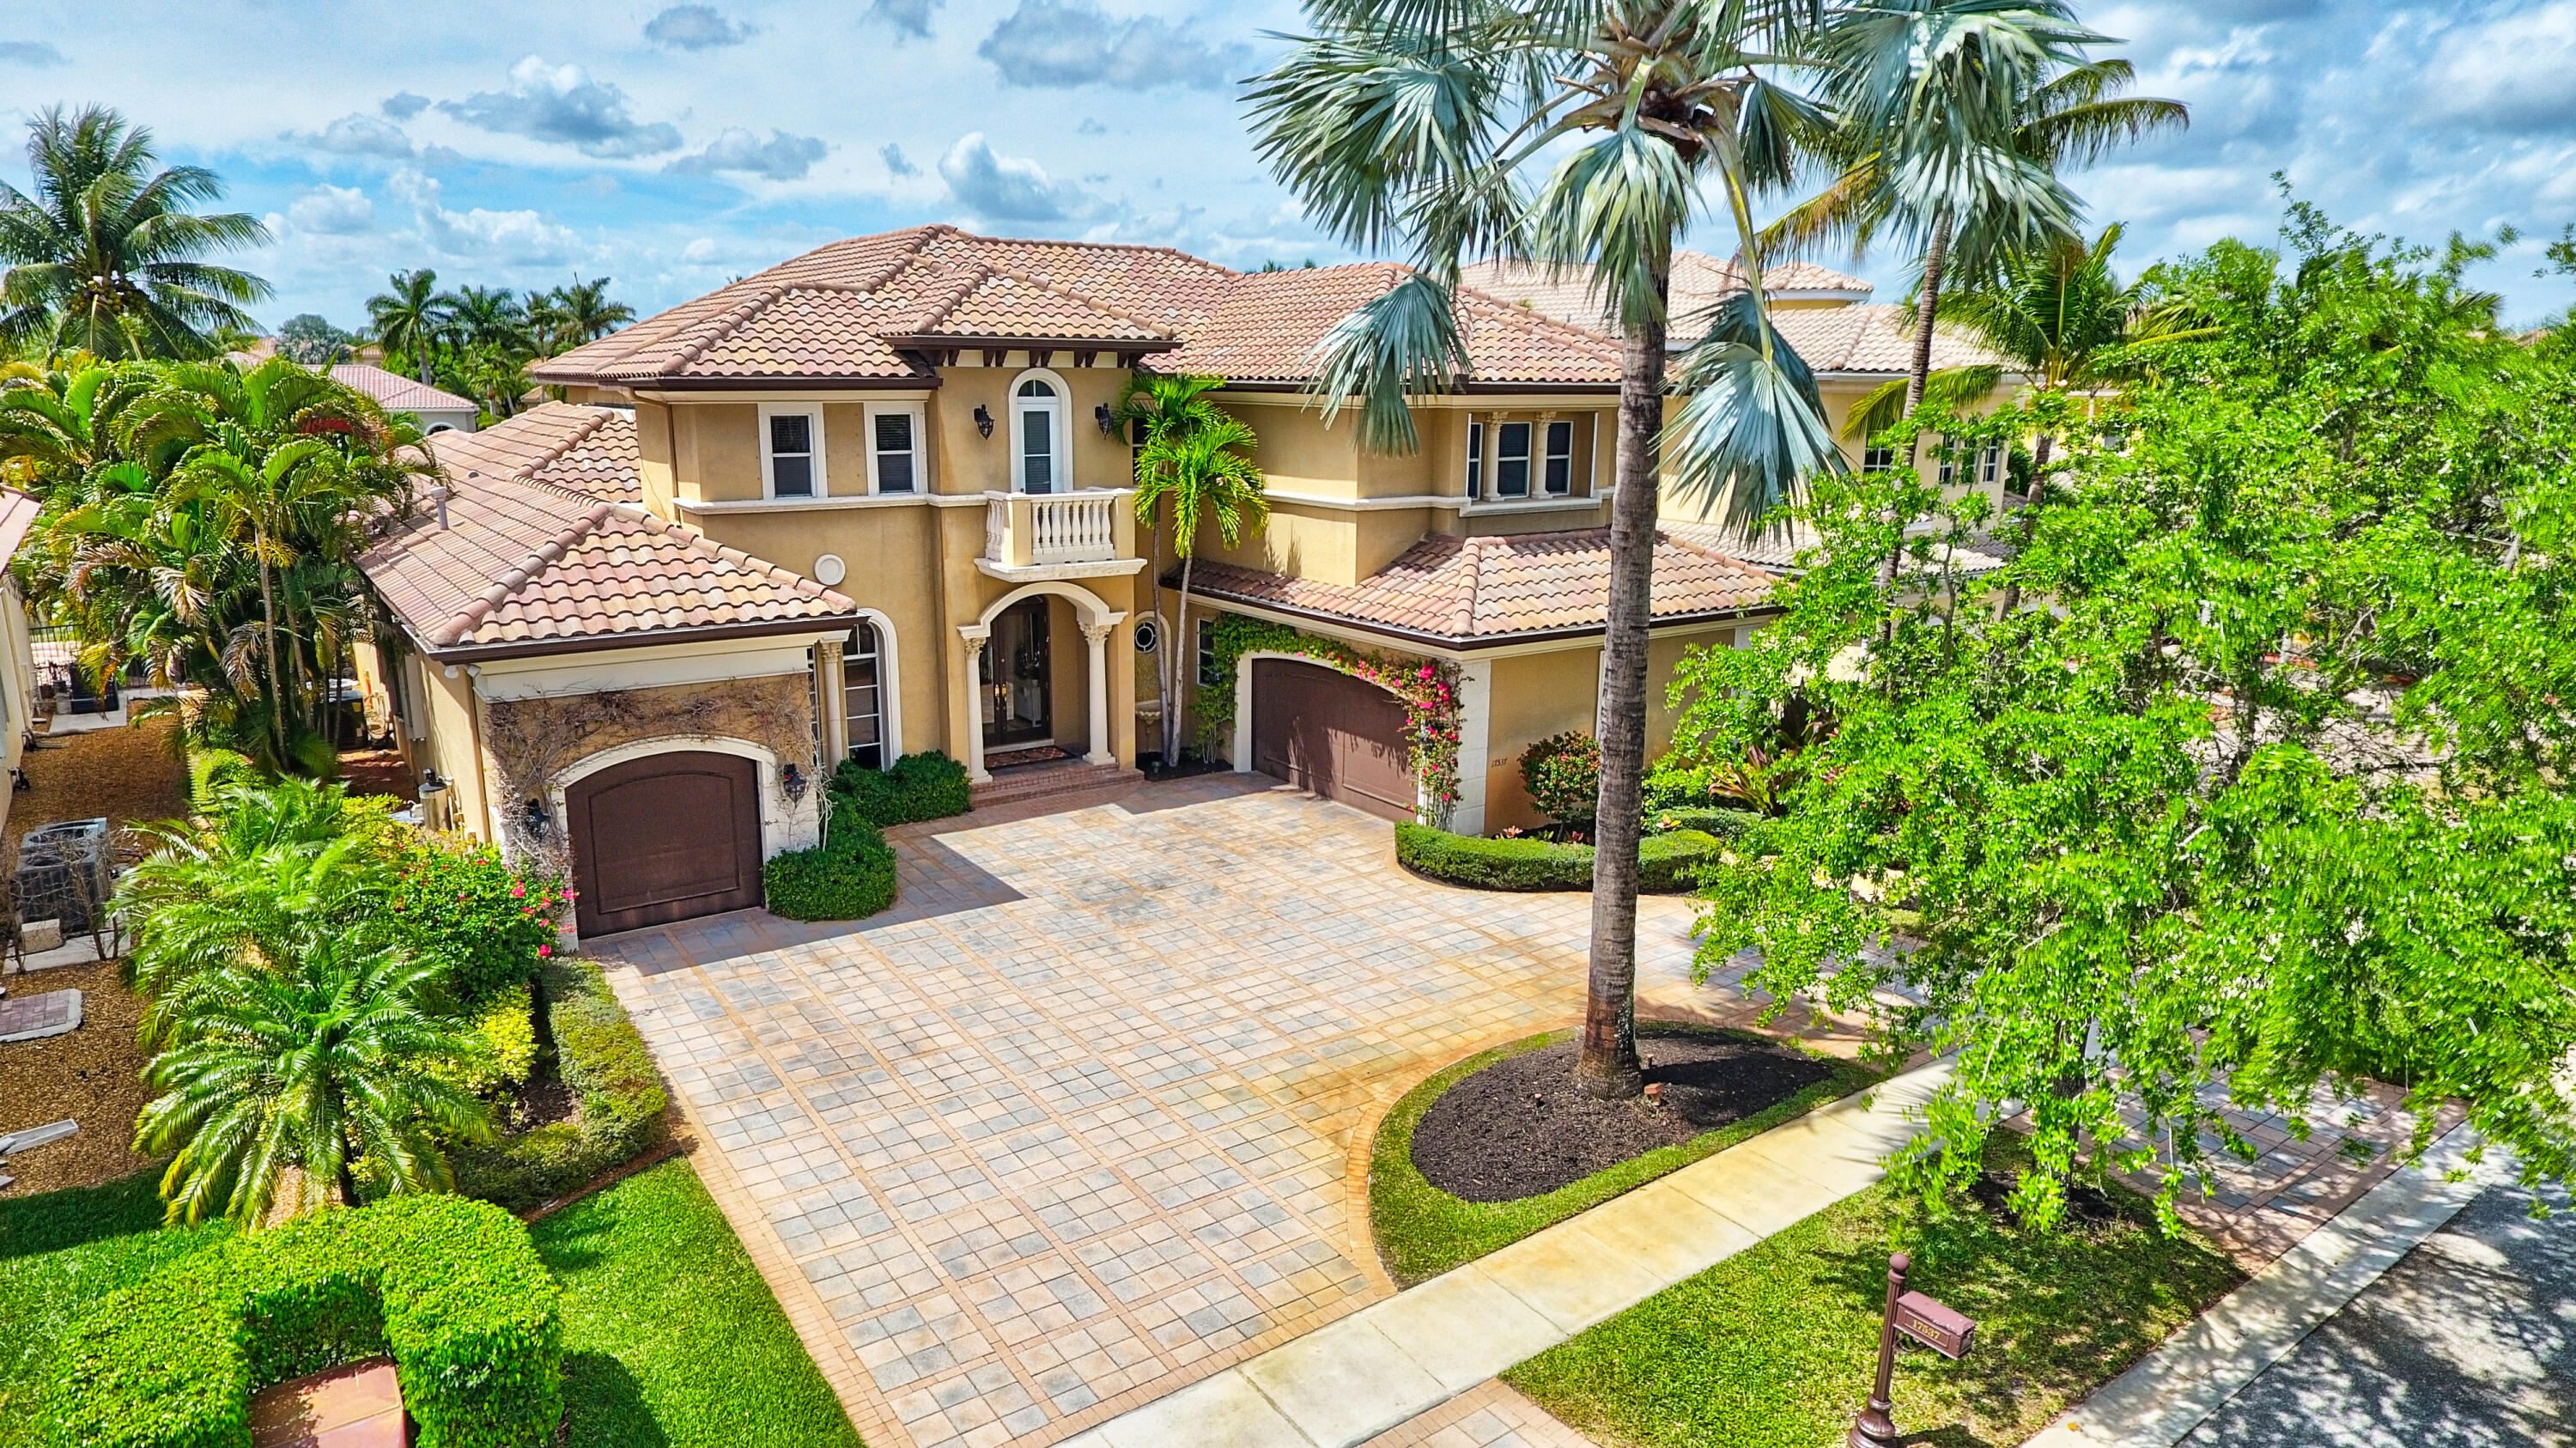 Home for sale in The Oaks At Boca Raton Boca Raton Florida